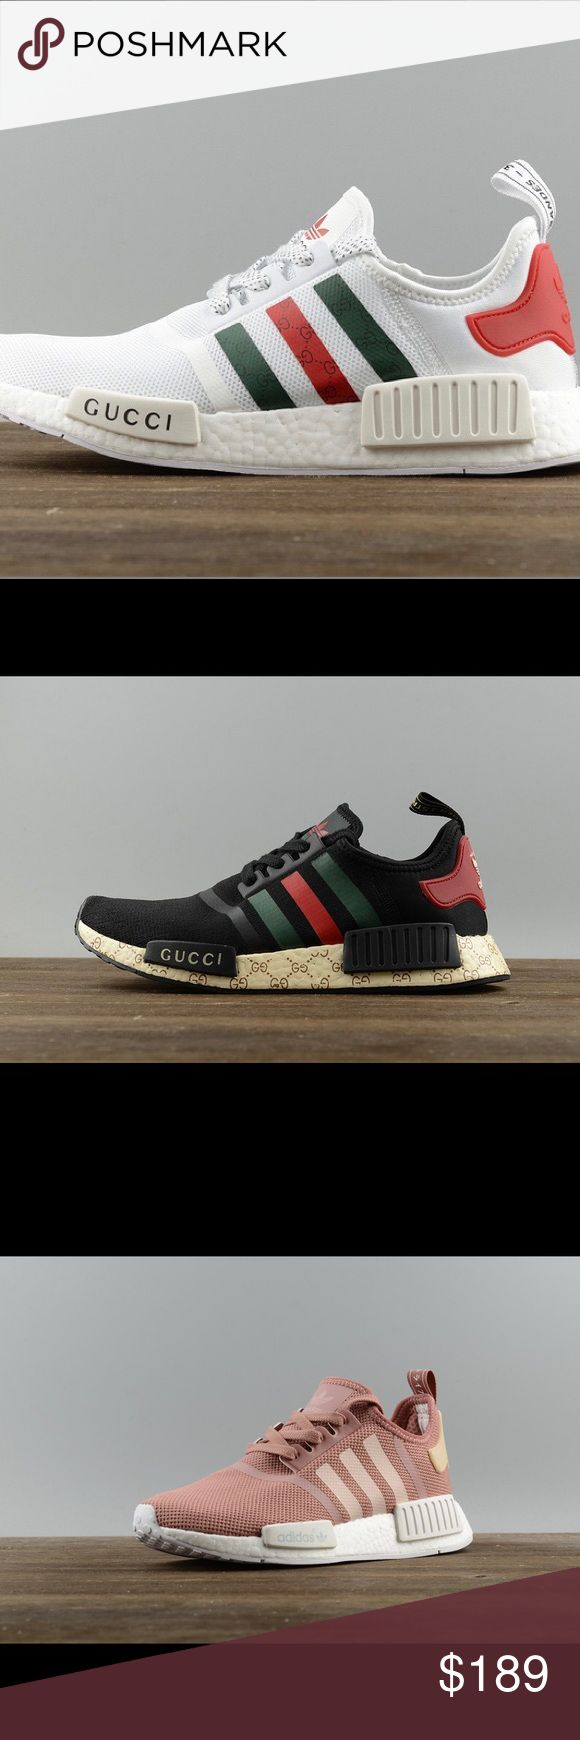 Gucci Adidas NMD fashion sneaker shoes New, comes with box.   I don't reply any comment, Please contact me at:catinaholmessc@gmail.com  ————————————————— Men mens womens women nike vans converse adidas puma roshe air max athletic sports white pink black purple evening heel high heeled flat feet leather ankle boots wedge free run shoes sneakers Nike, Jordan, KD, Lebron, Foamposite, SB, Fly, Max adidas Shoes Sneakers